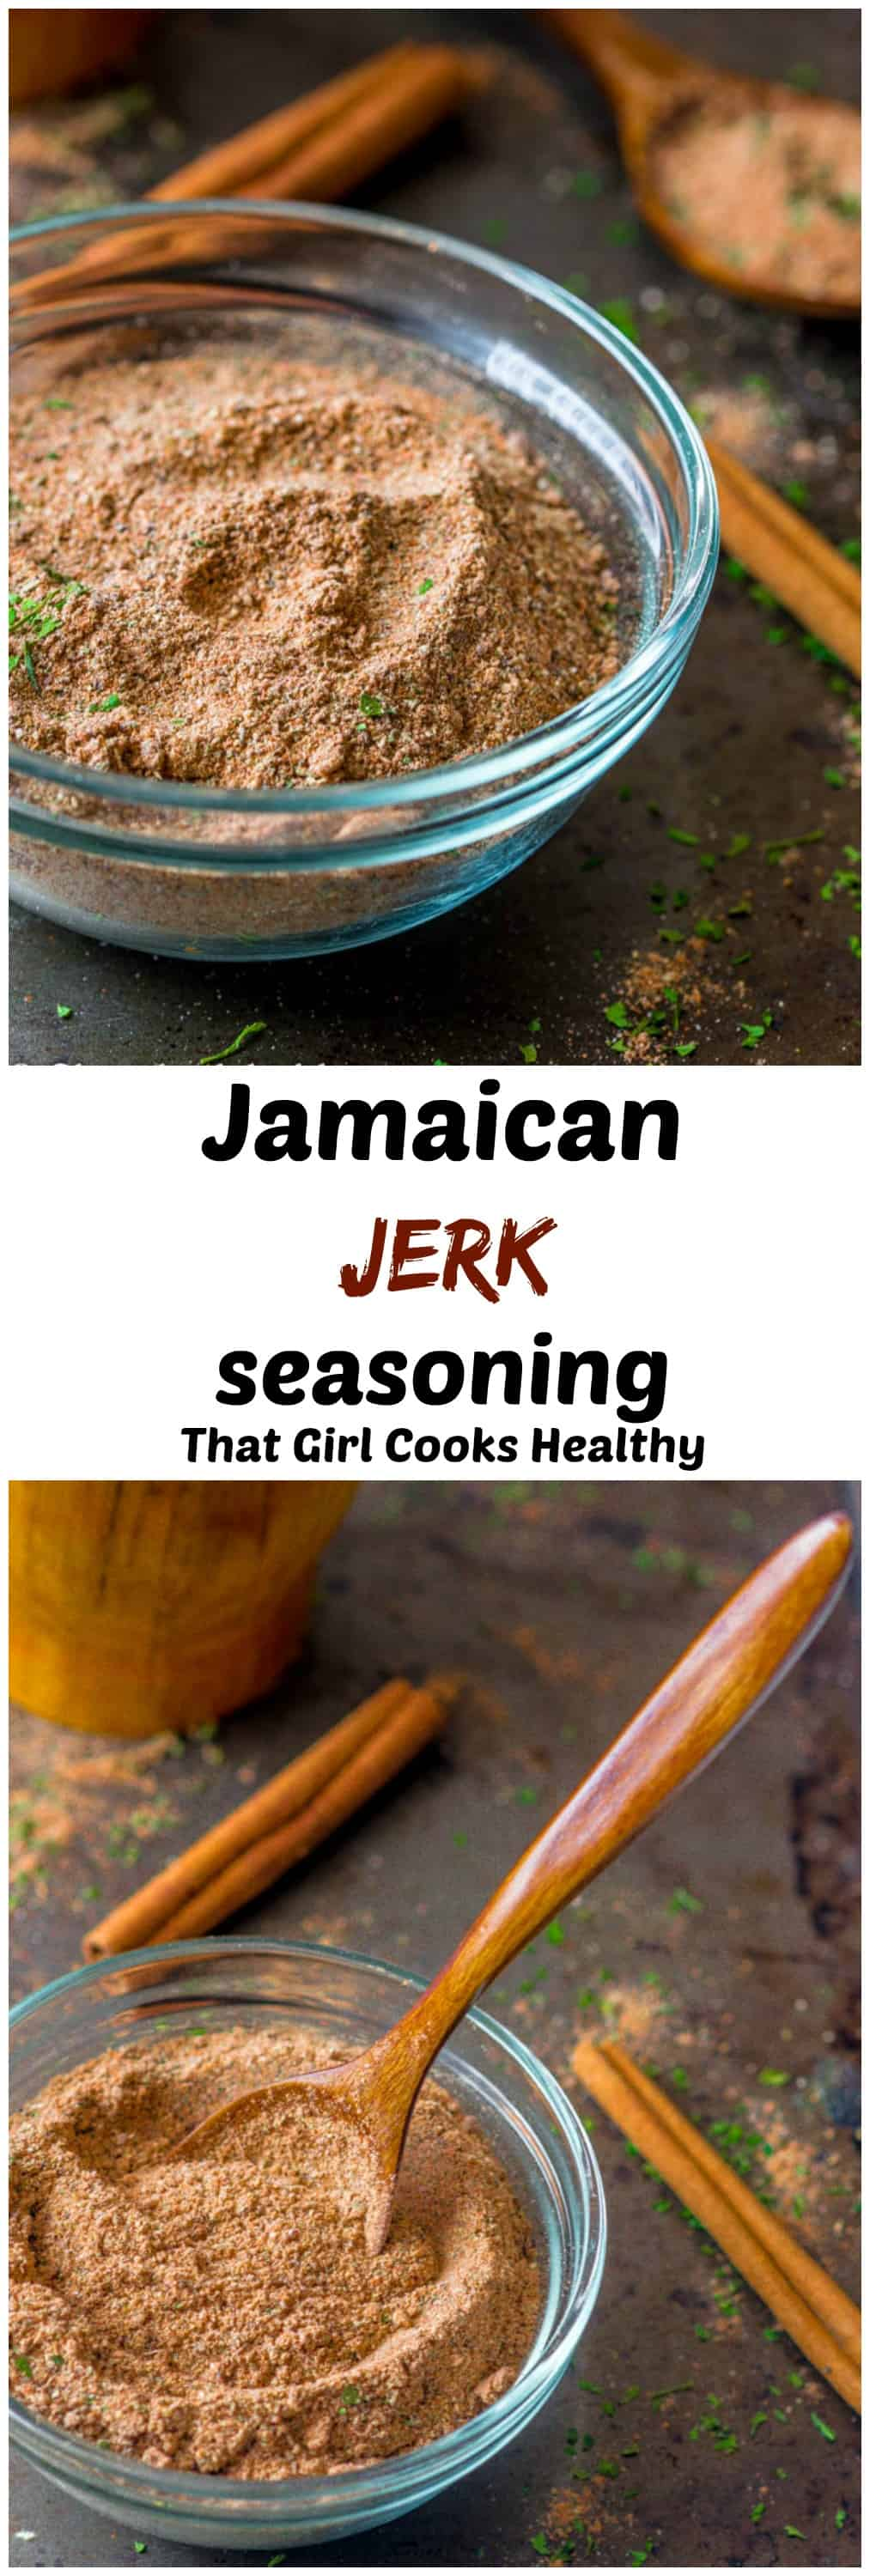 Learn how to make the best Jamaican jerk seasoning from scratch